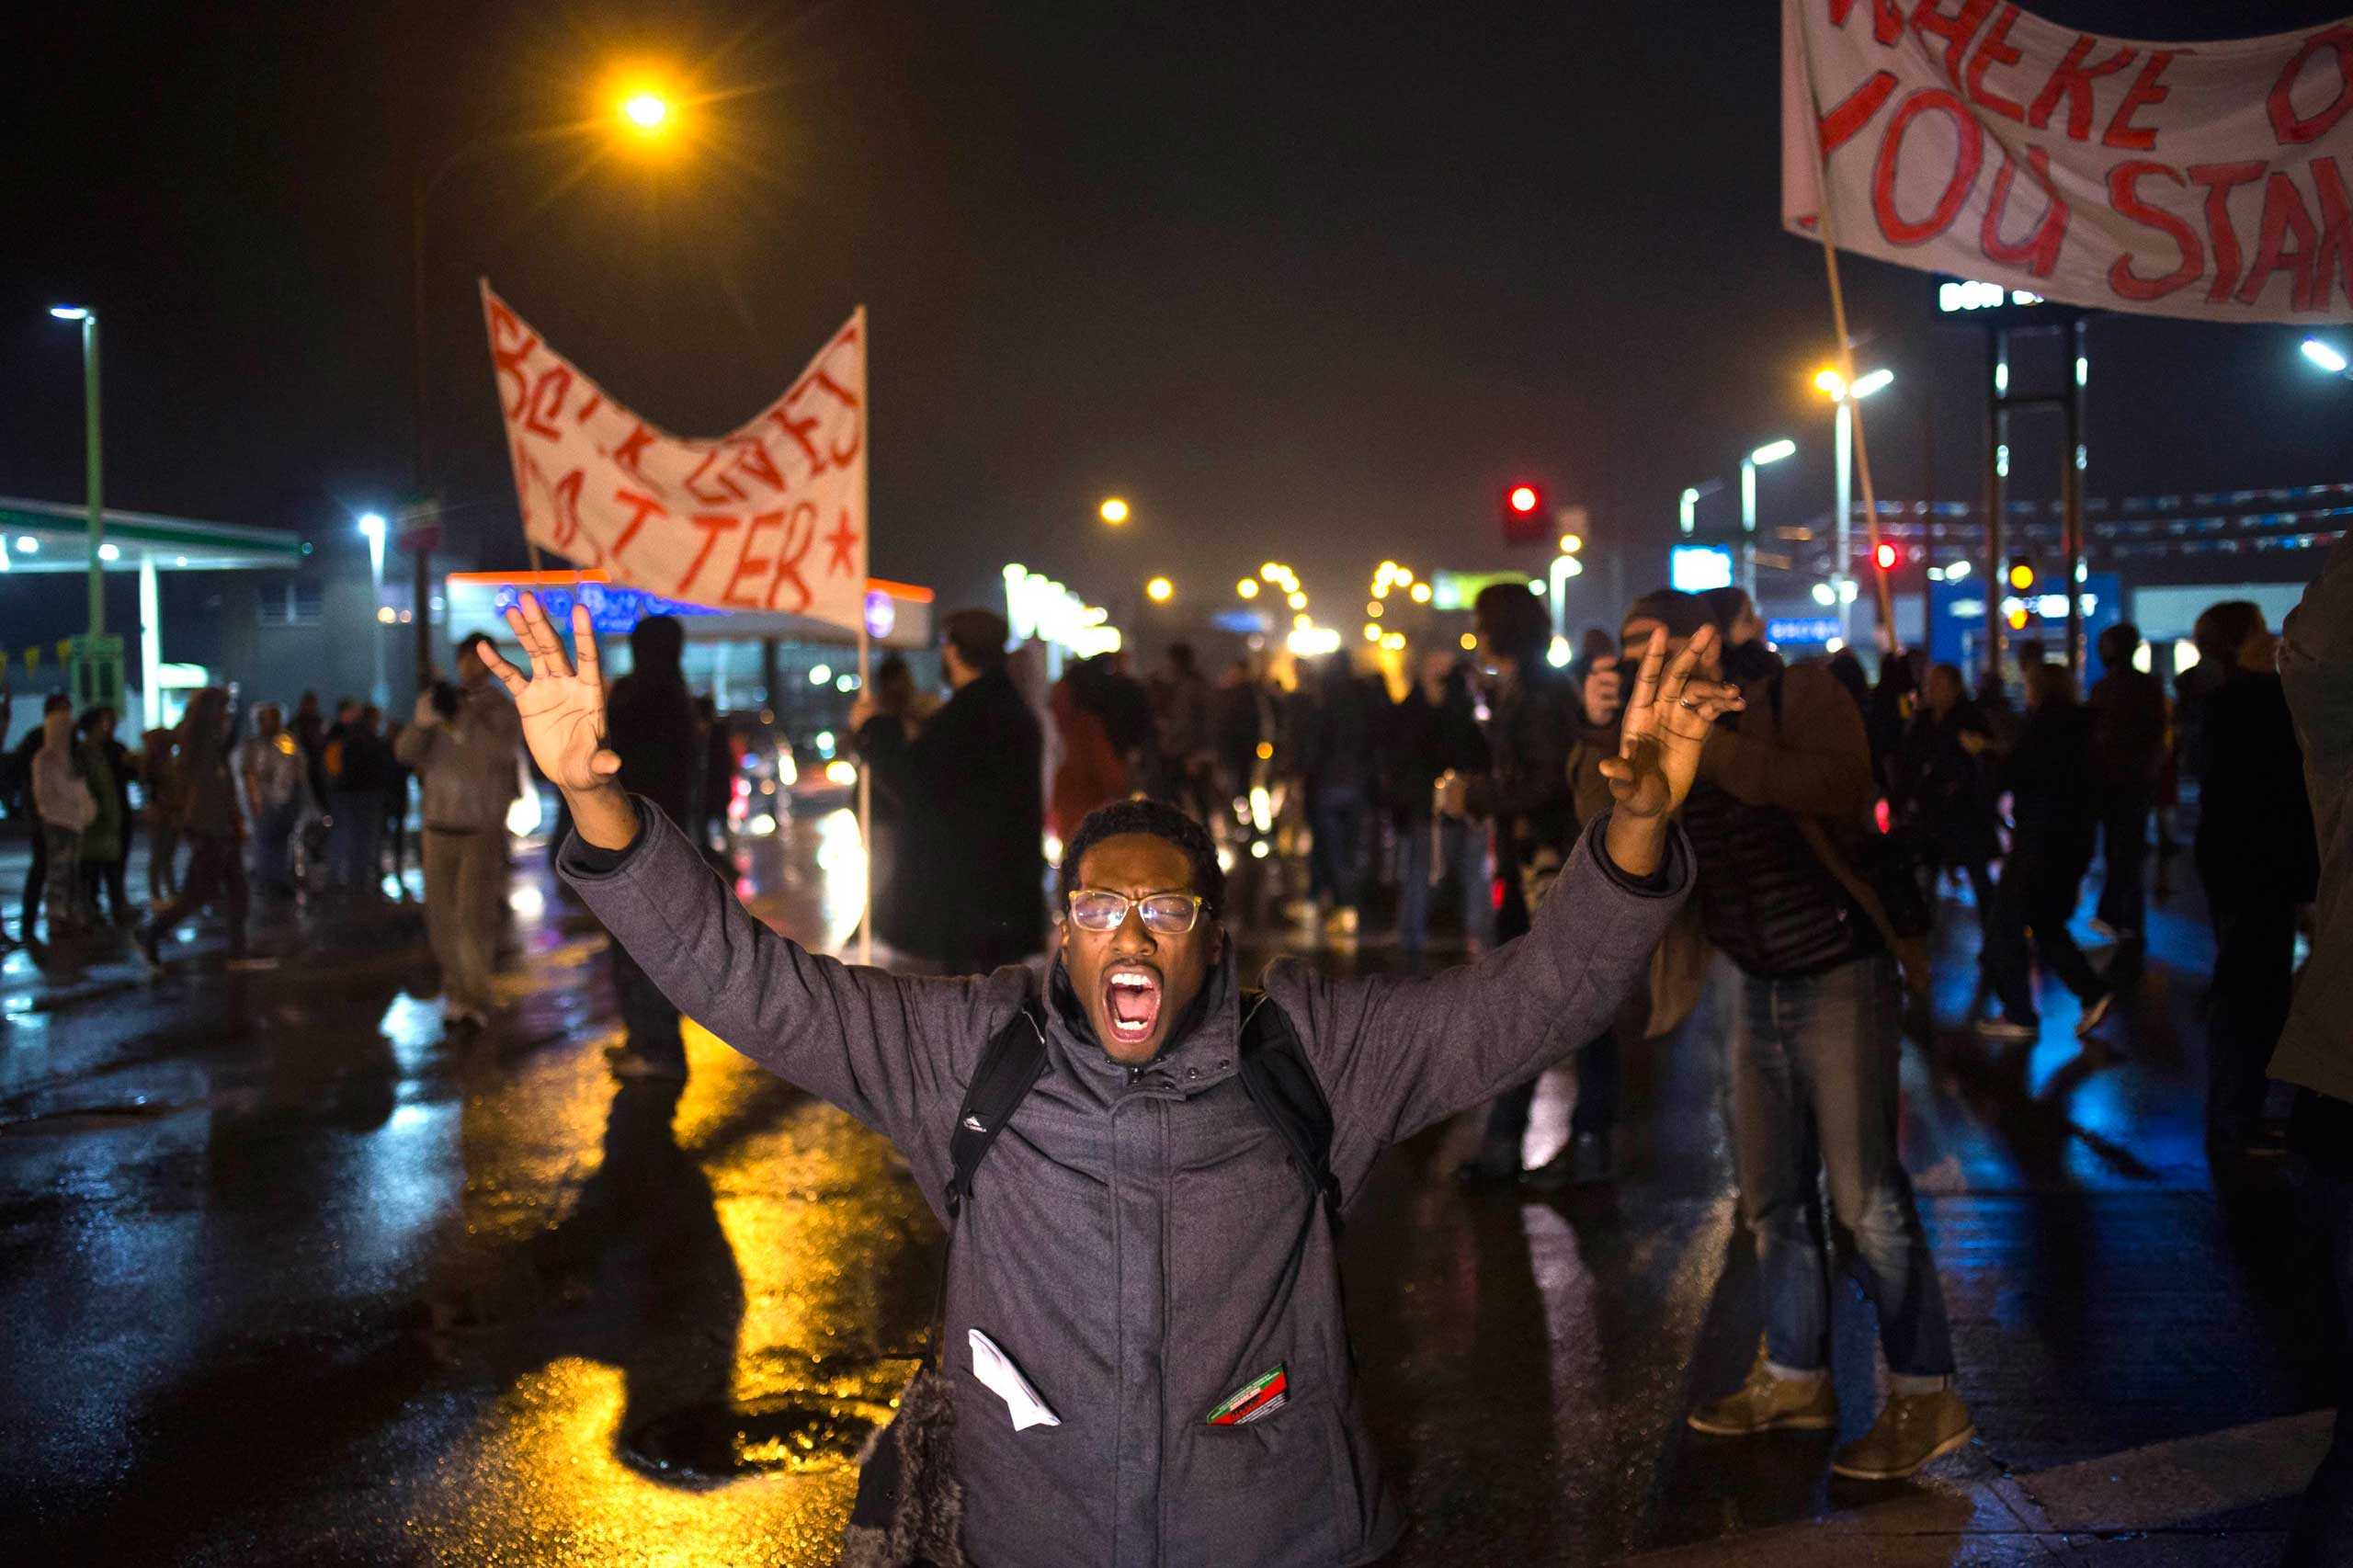 A protester, demanding the criminal indictment of Darren Wilson, shouts slogans while stopping traffic in St. Louis, on Nov. 23, 2014